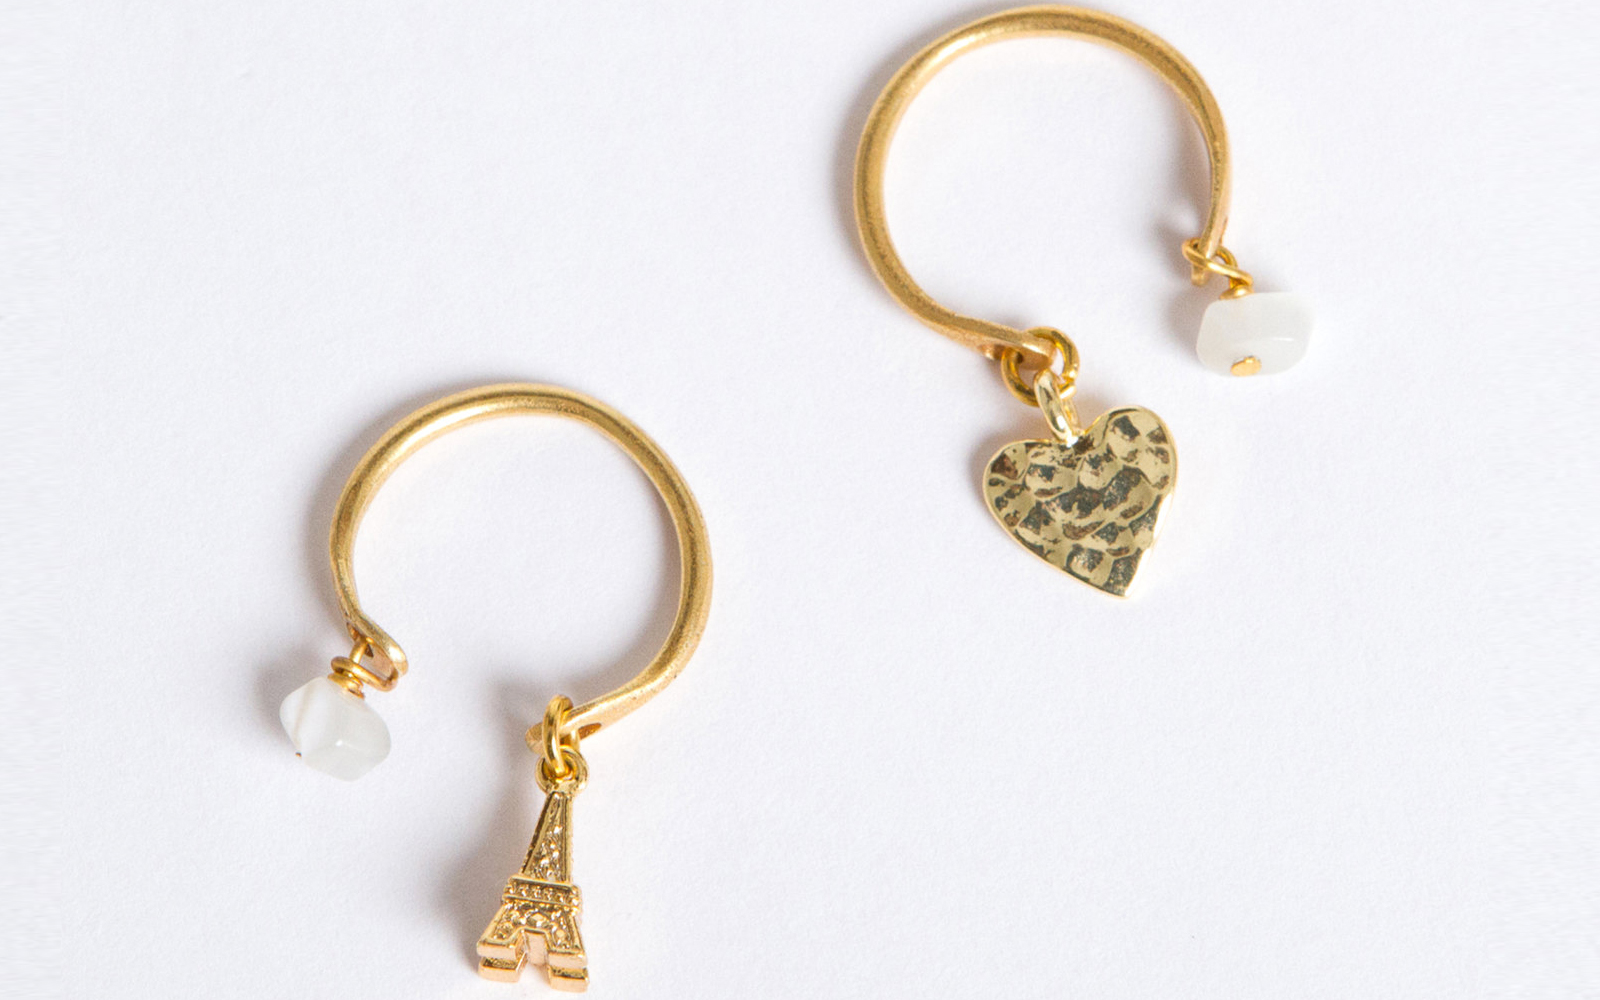 Jewelry That's Perfect for the Globe-Trotting Fashionista